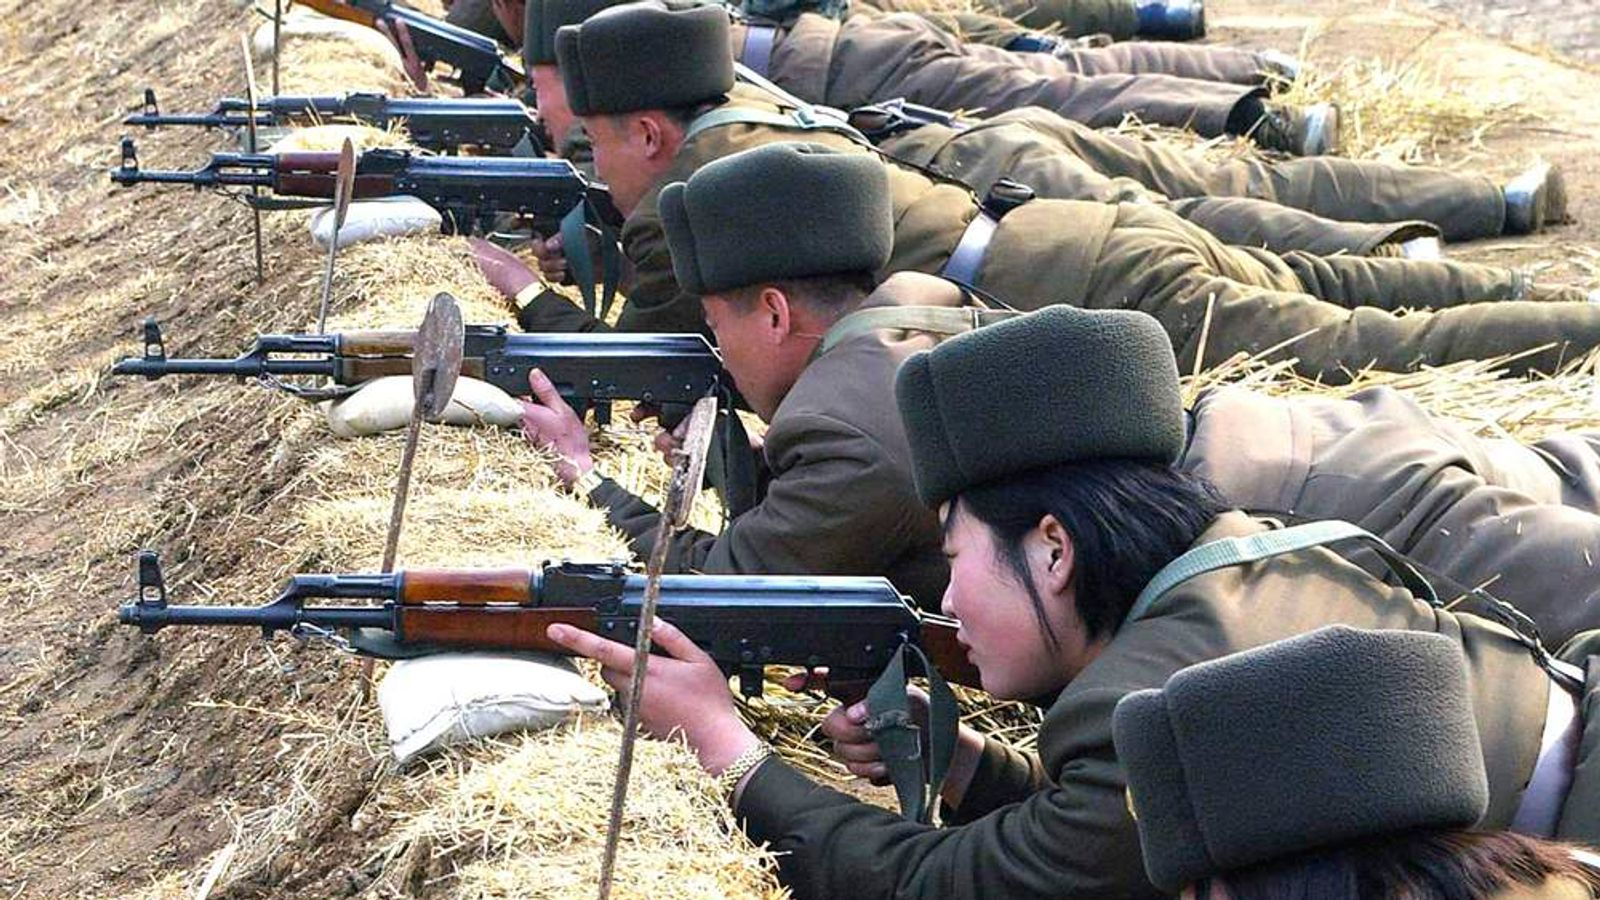 KCNA handout picture shows North Korean soldiers attending military training